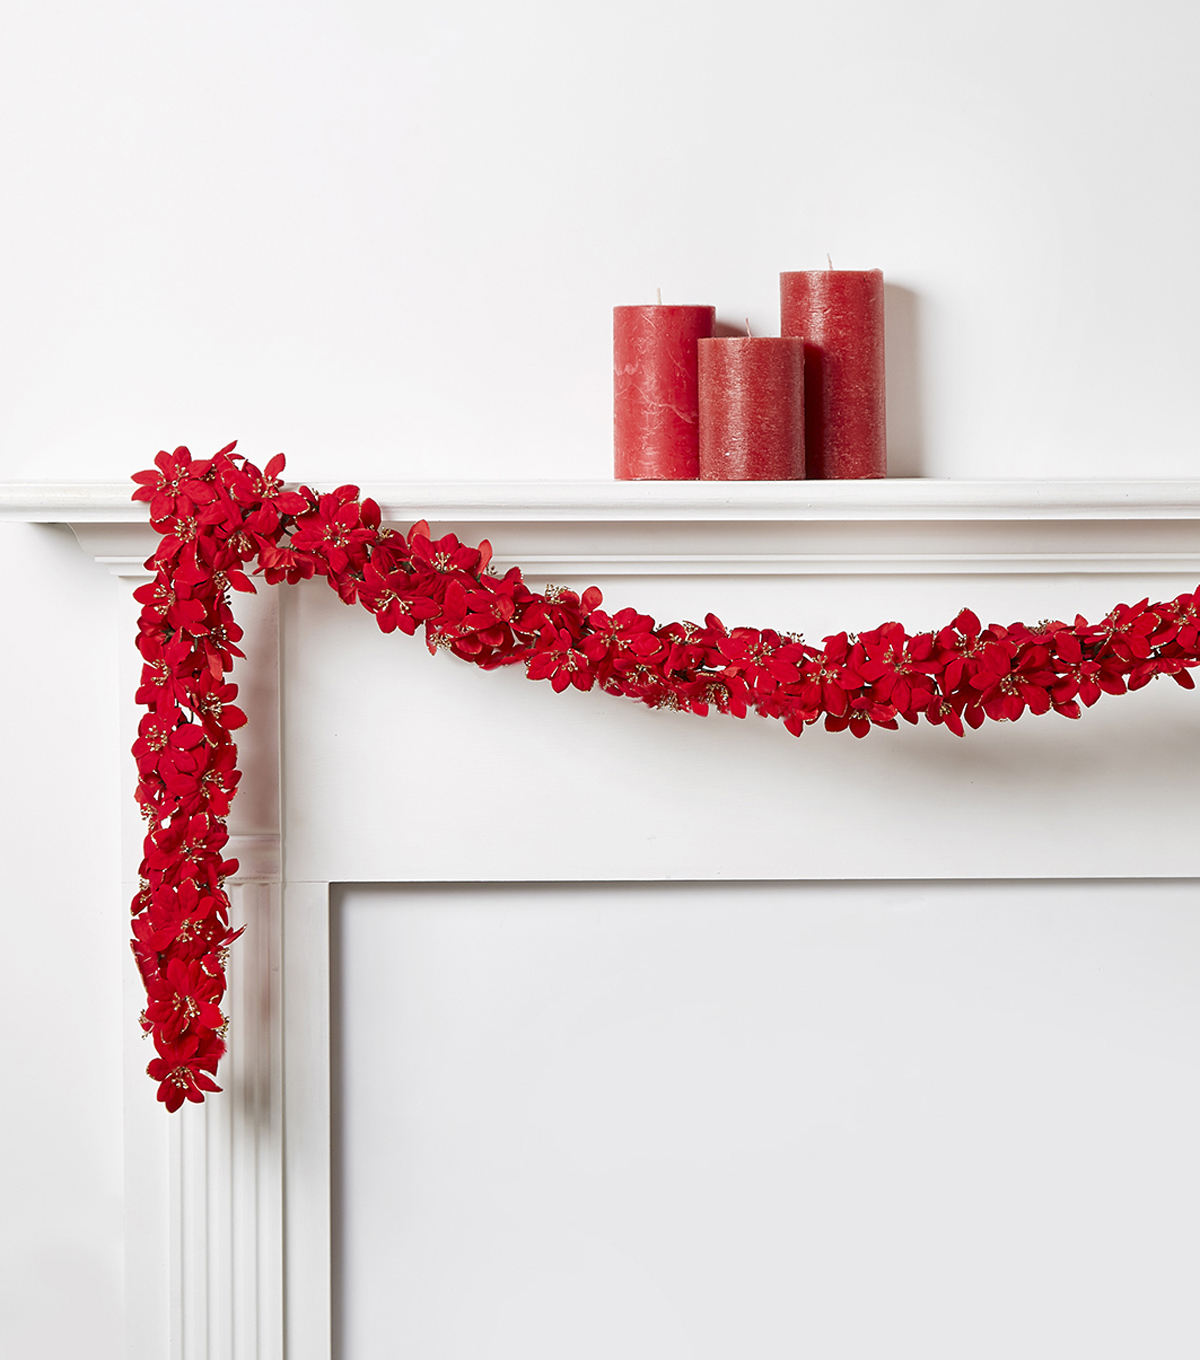 Blooming Holiday Chain Poinsettia Garland